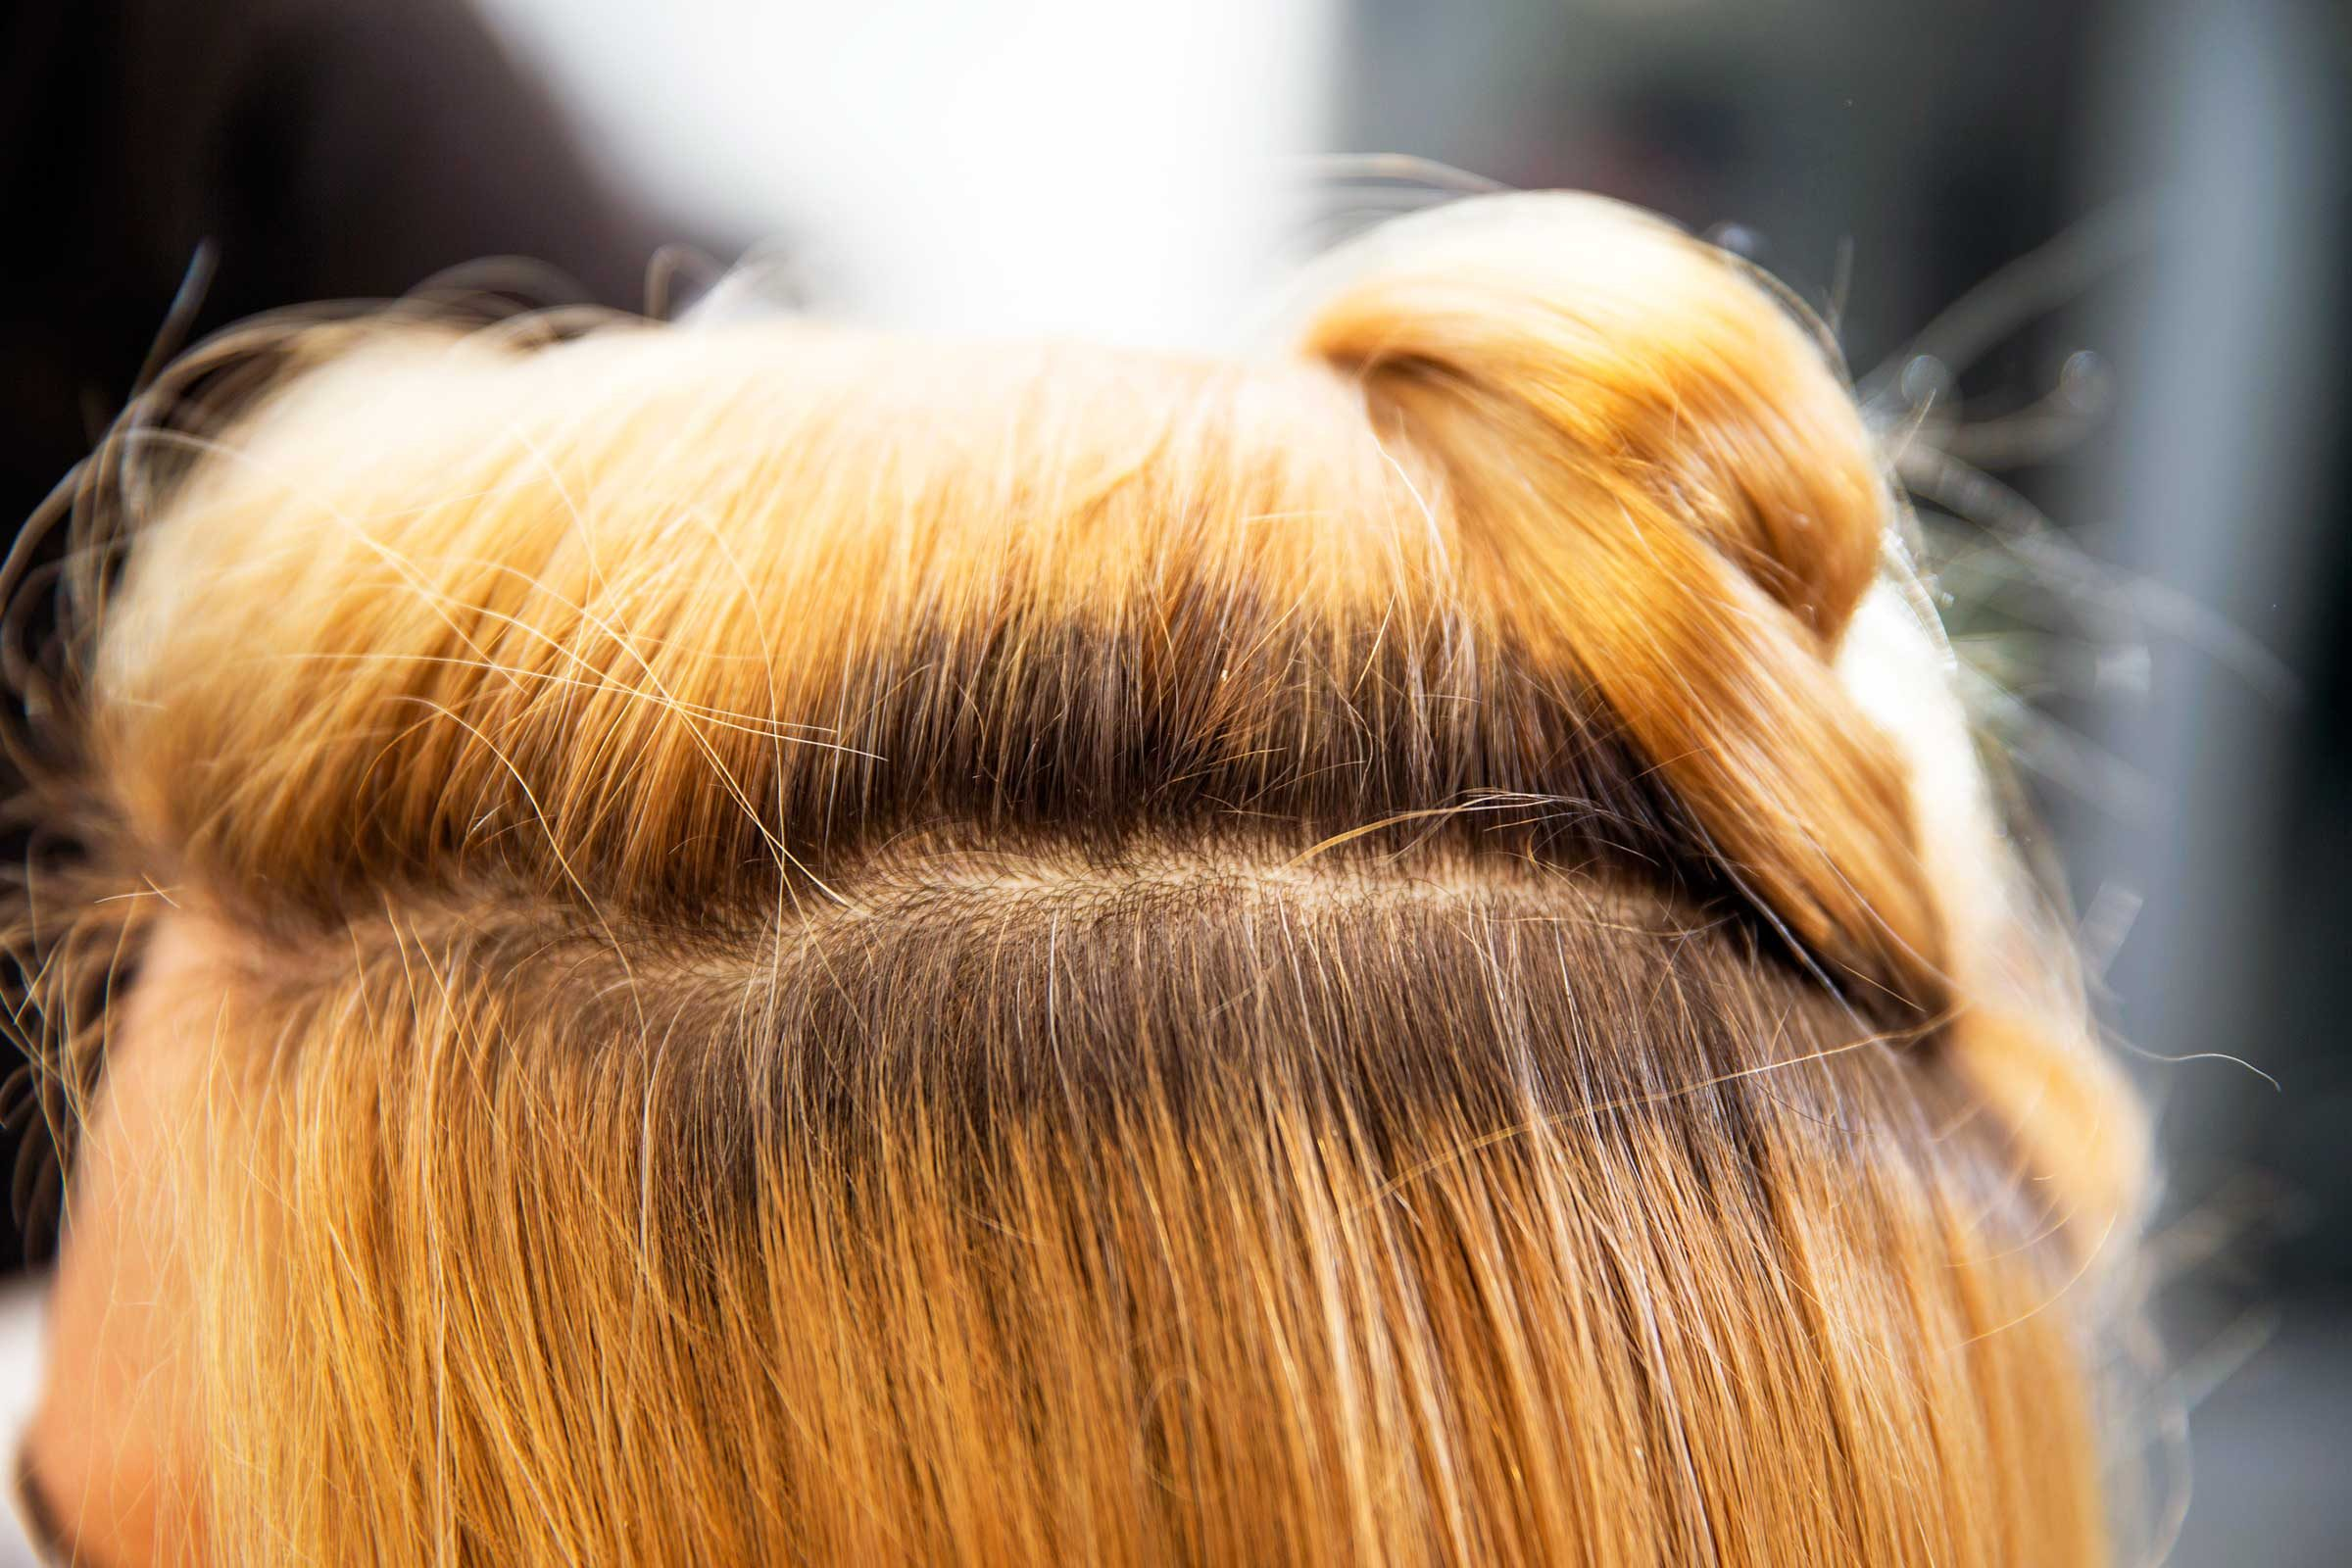 Hair Dye Tips: Stretch Time Between Color Appointments | Reader\'s Digest